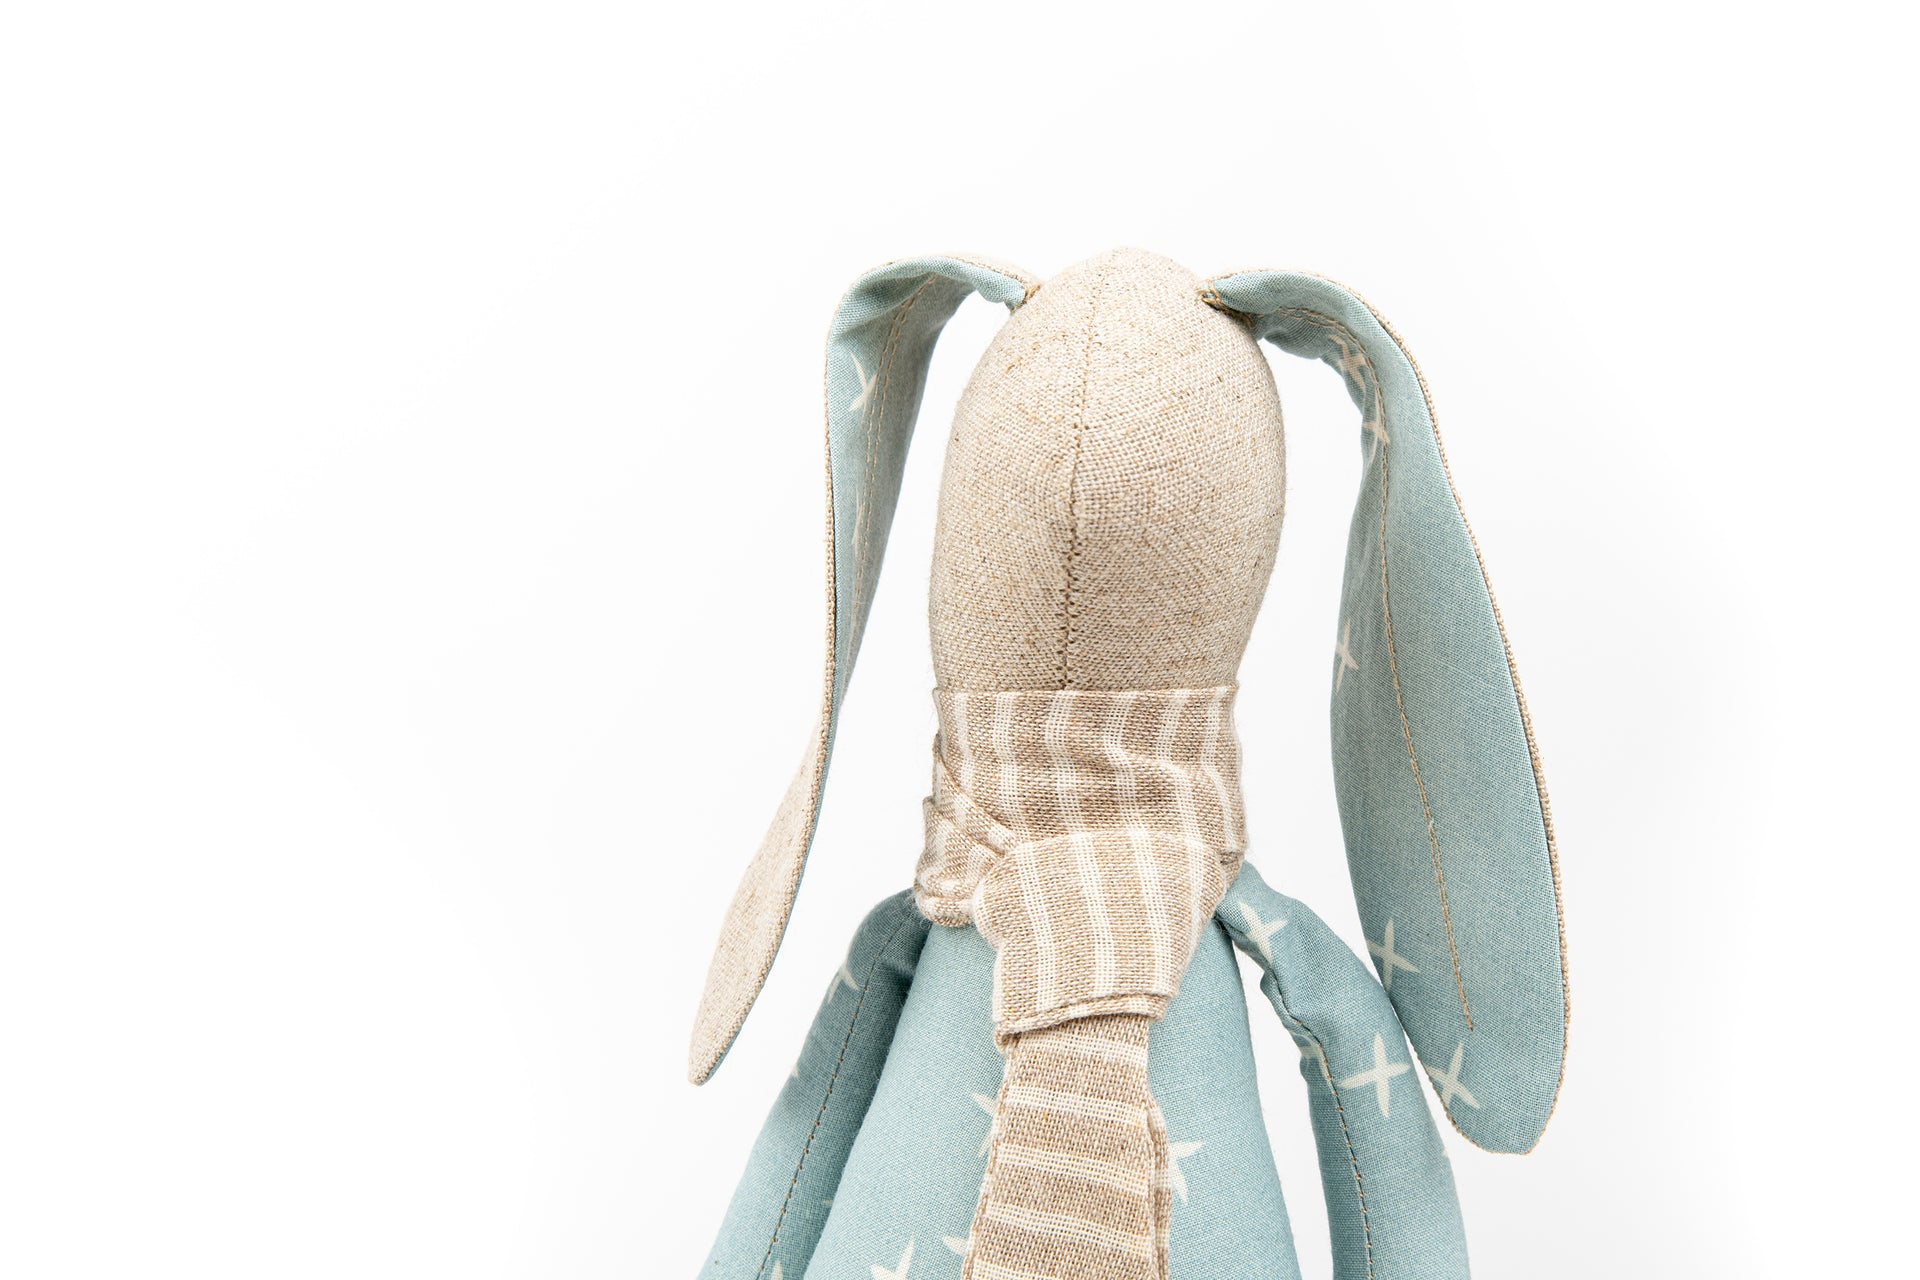 Linen bunny Eco Fabric Doll Soft Toy Baby bunny doll Stuffed animal toy SMALL rabbit doll Cloth Bunny Rag Doll Plushie Softie Doll Cuddling